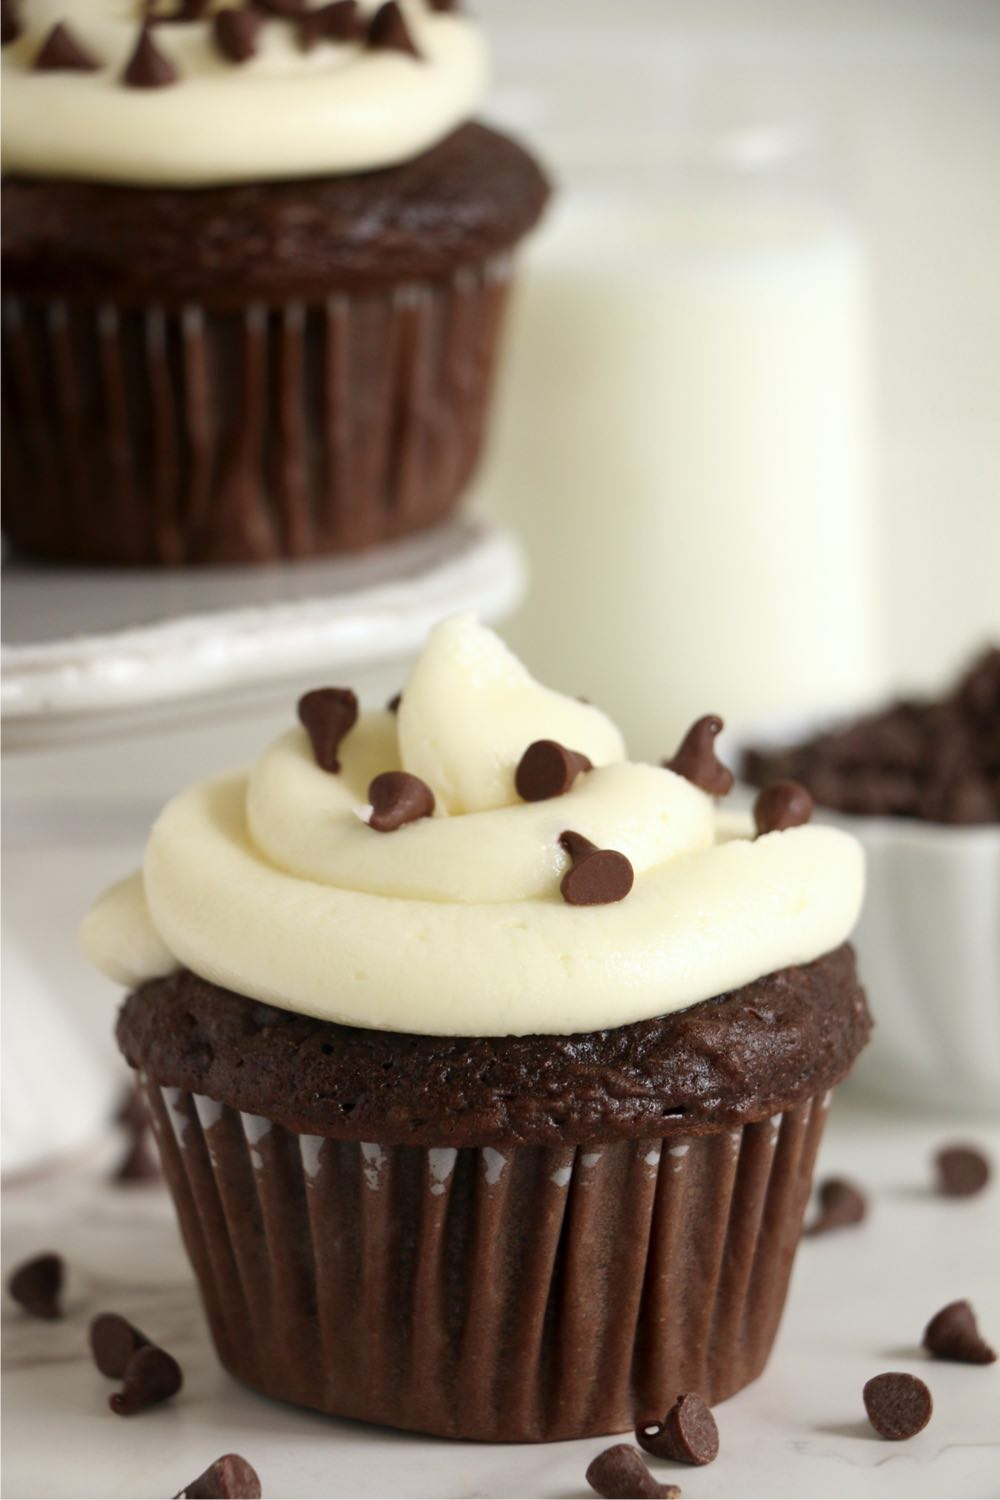 chocolate cupcake with vanilla frosting and chocolate chips